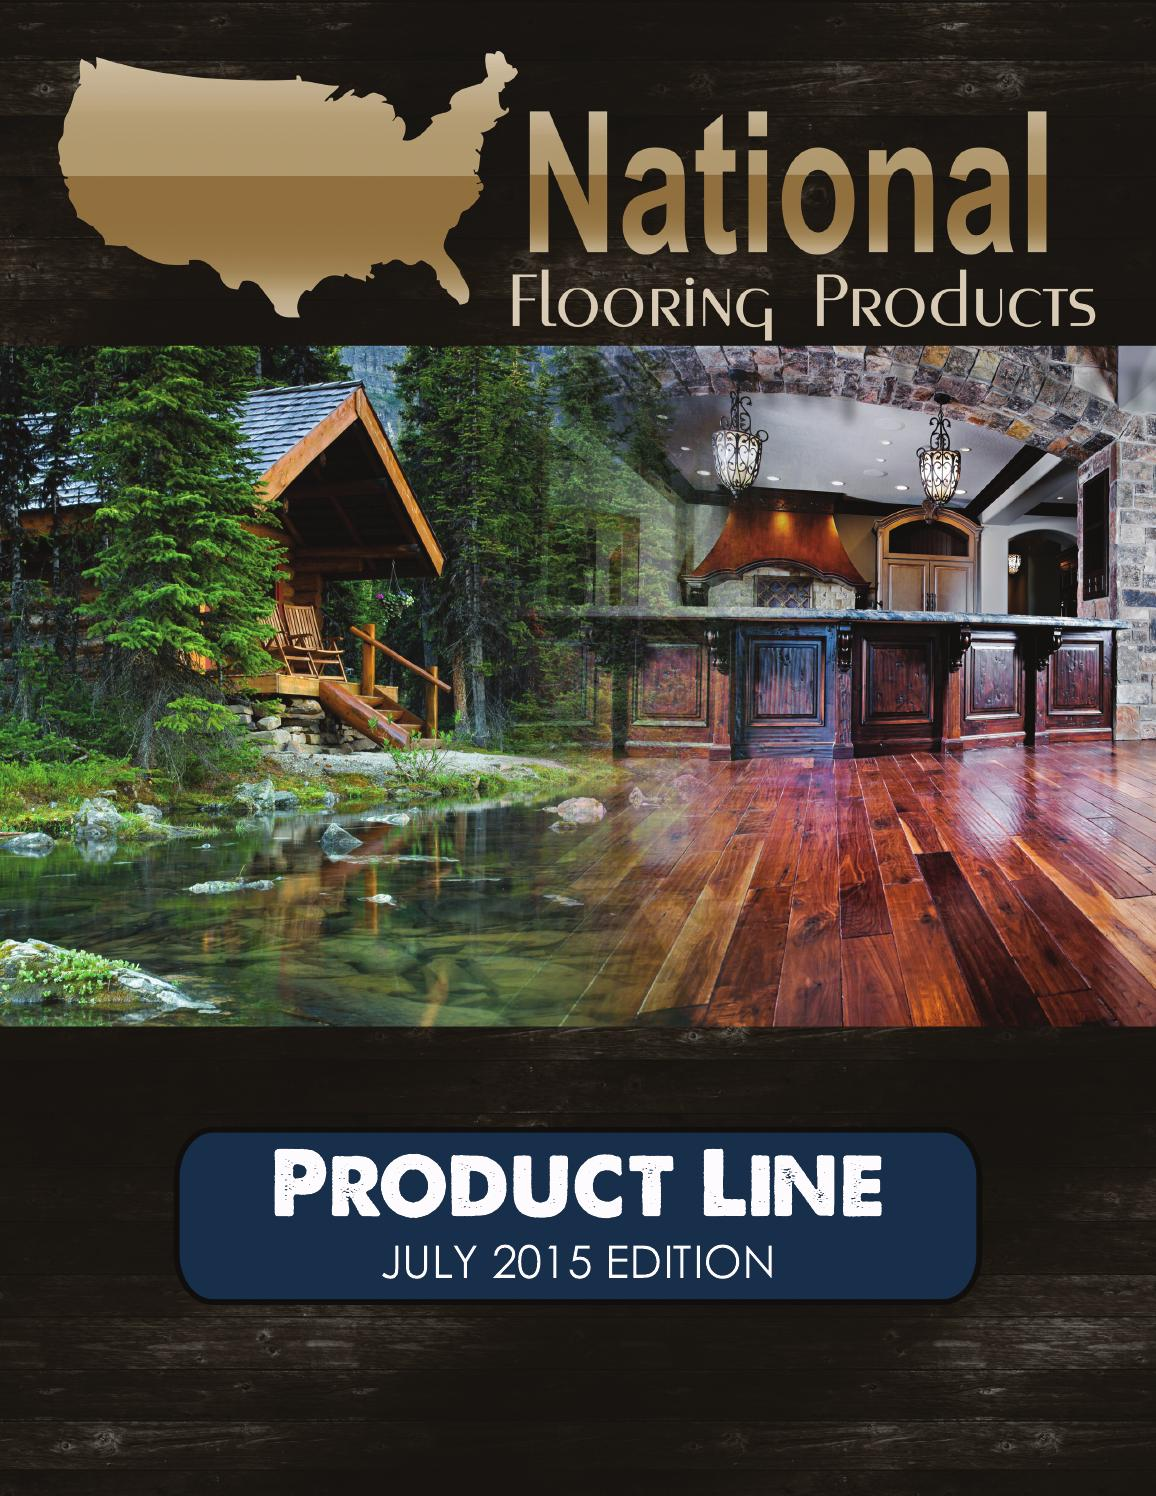 National Flooring Products Product Line Magazine  JULY 2015 By National  Flooring Products   Issuu